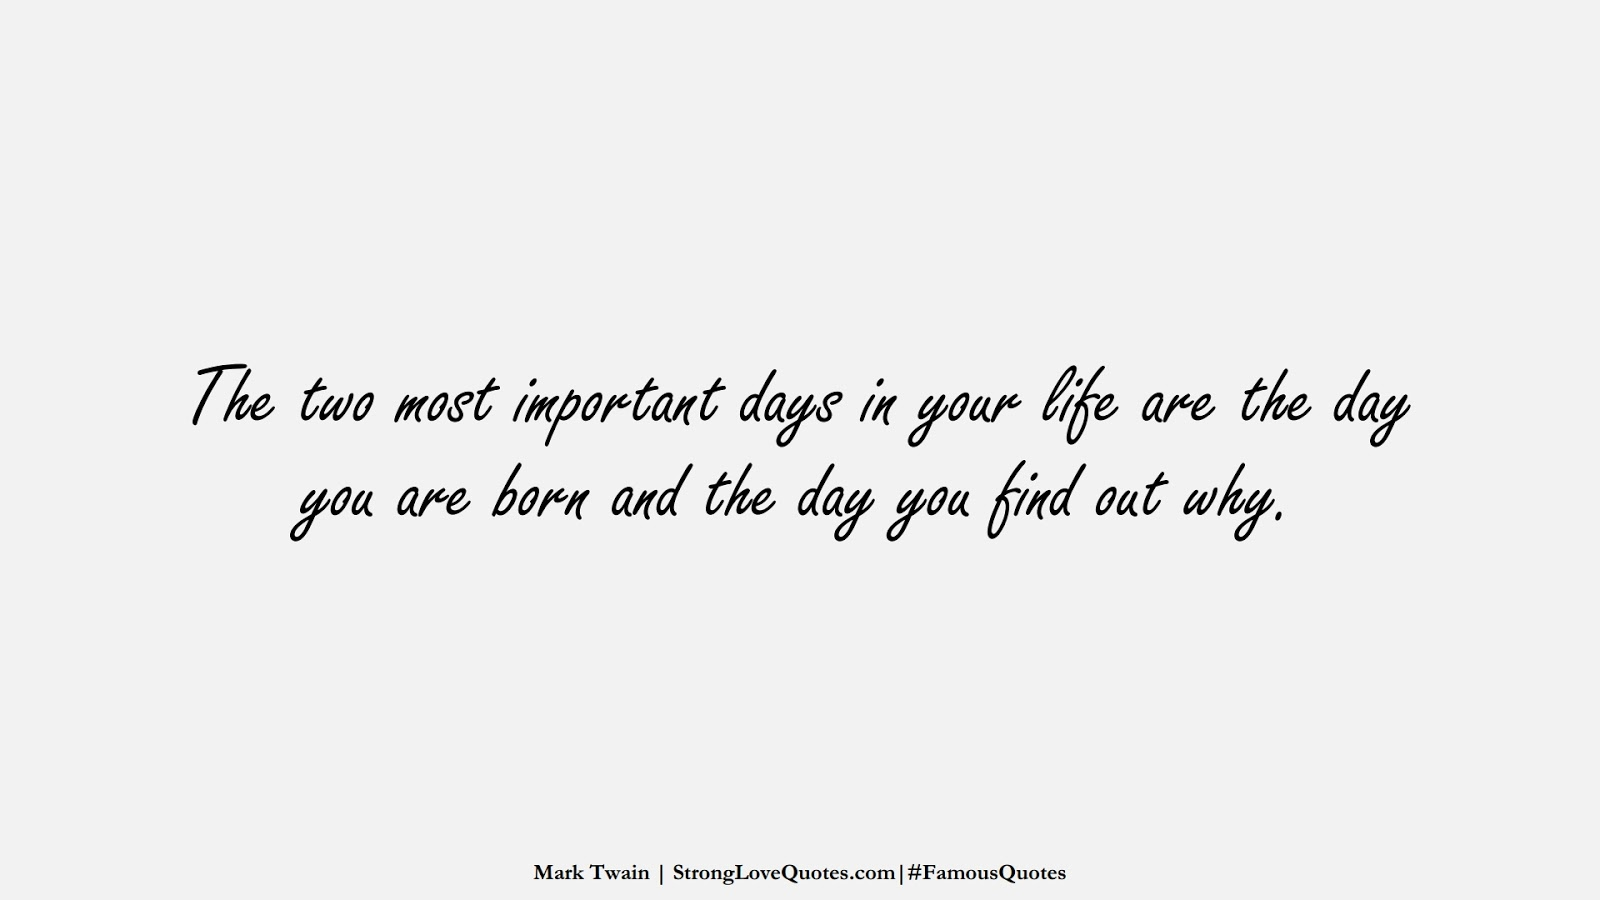 The two most important days in your life are the day you are born and the day you find out why. (Mark Twain);  #FamousQuotes